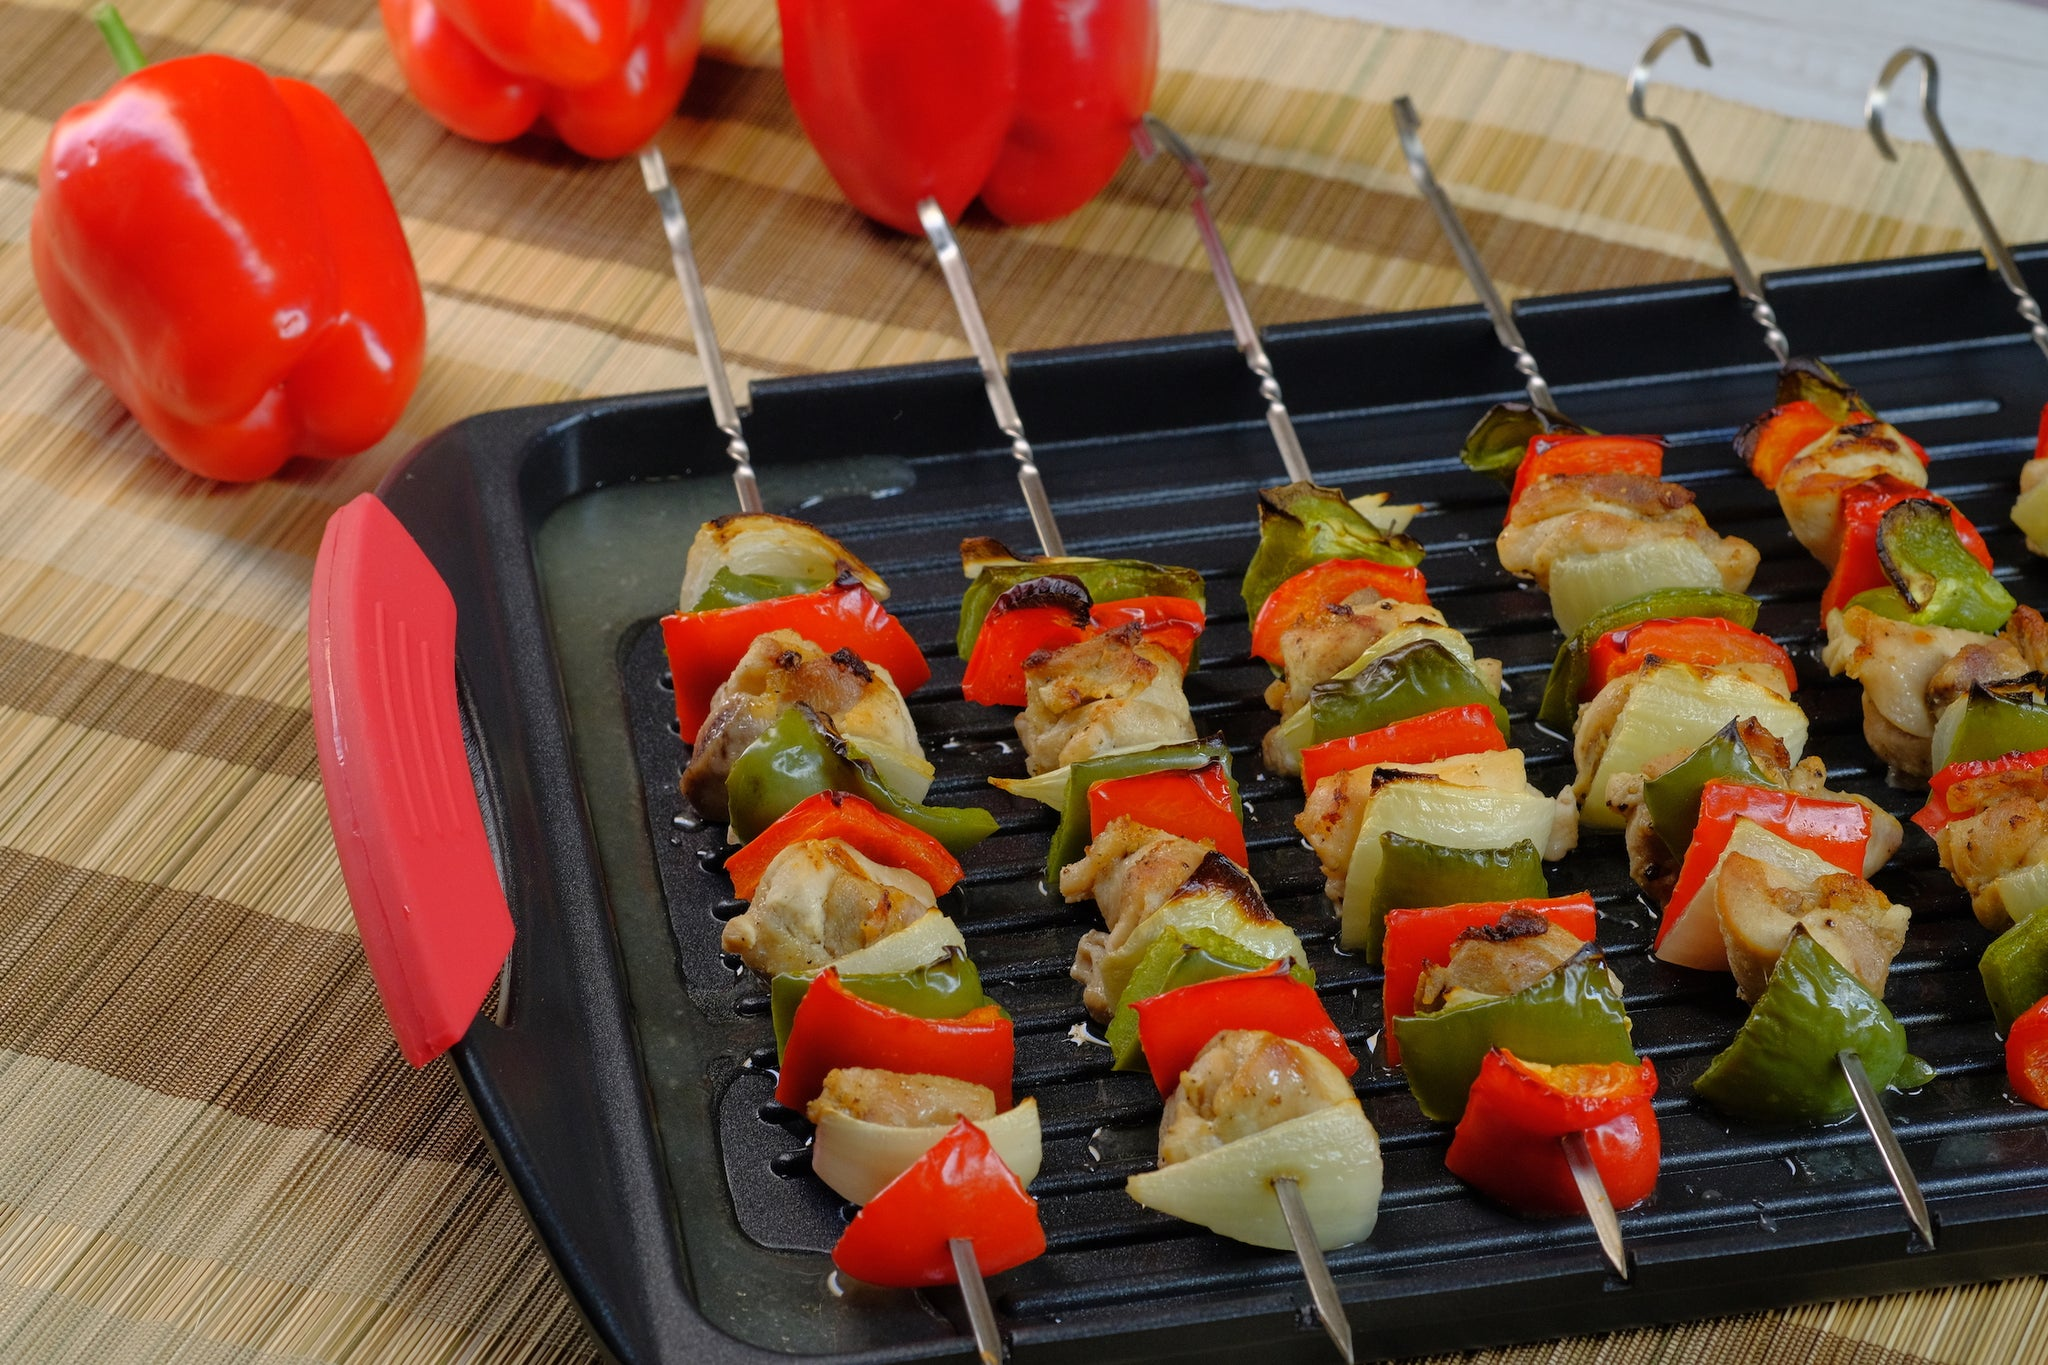 Griddle Me This - Cast Aluminium Griddle Plate with Stainless Steel Skewers